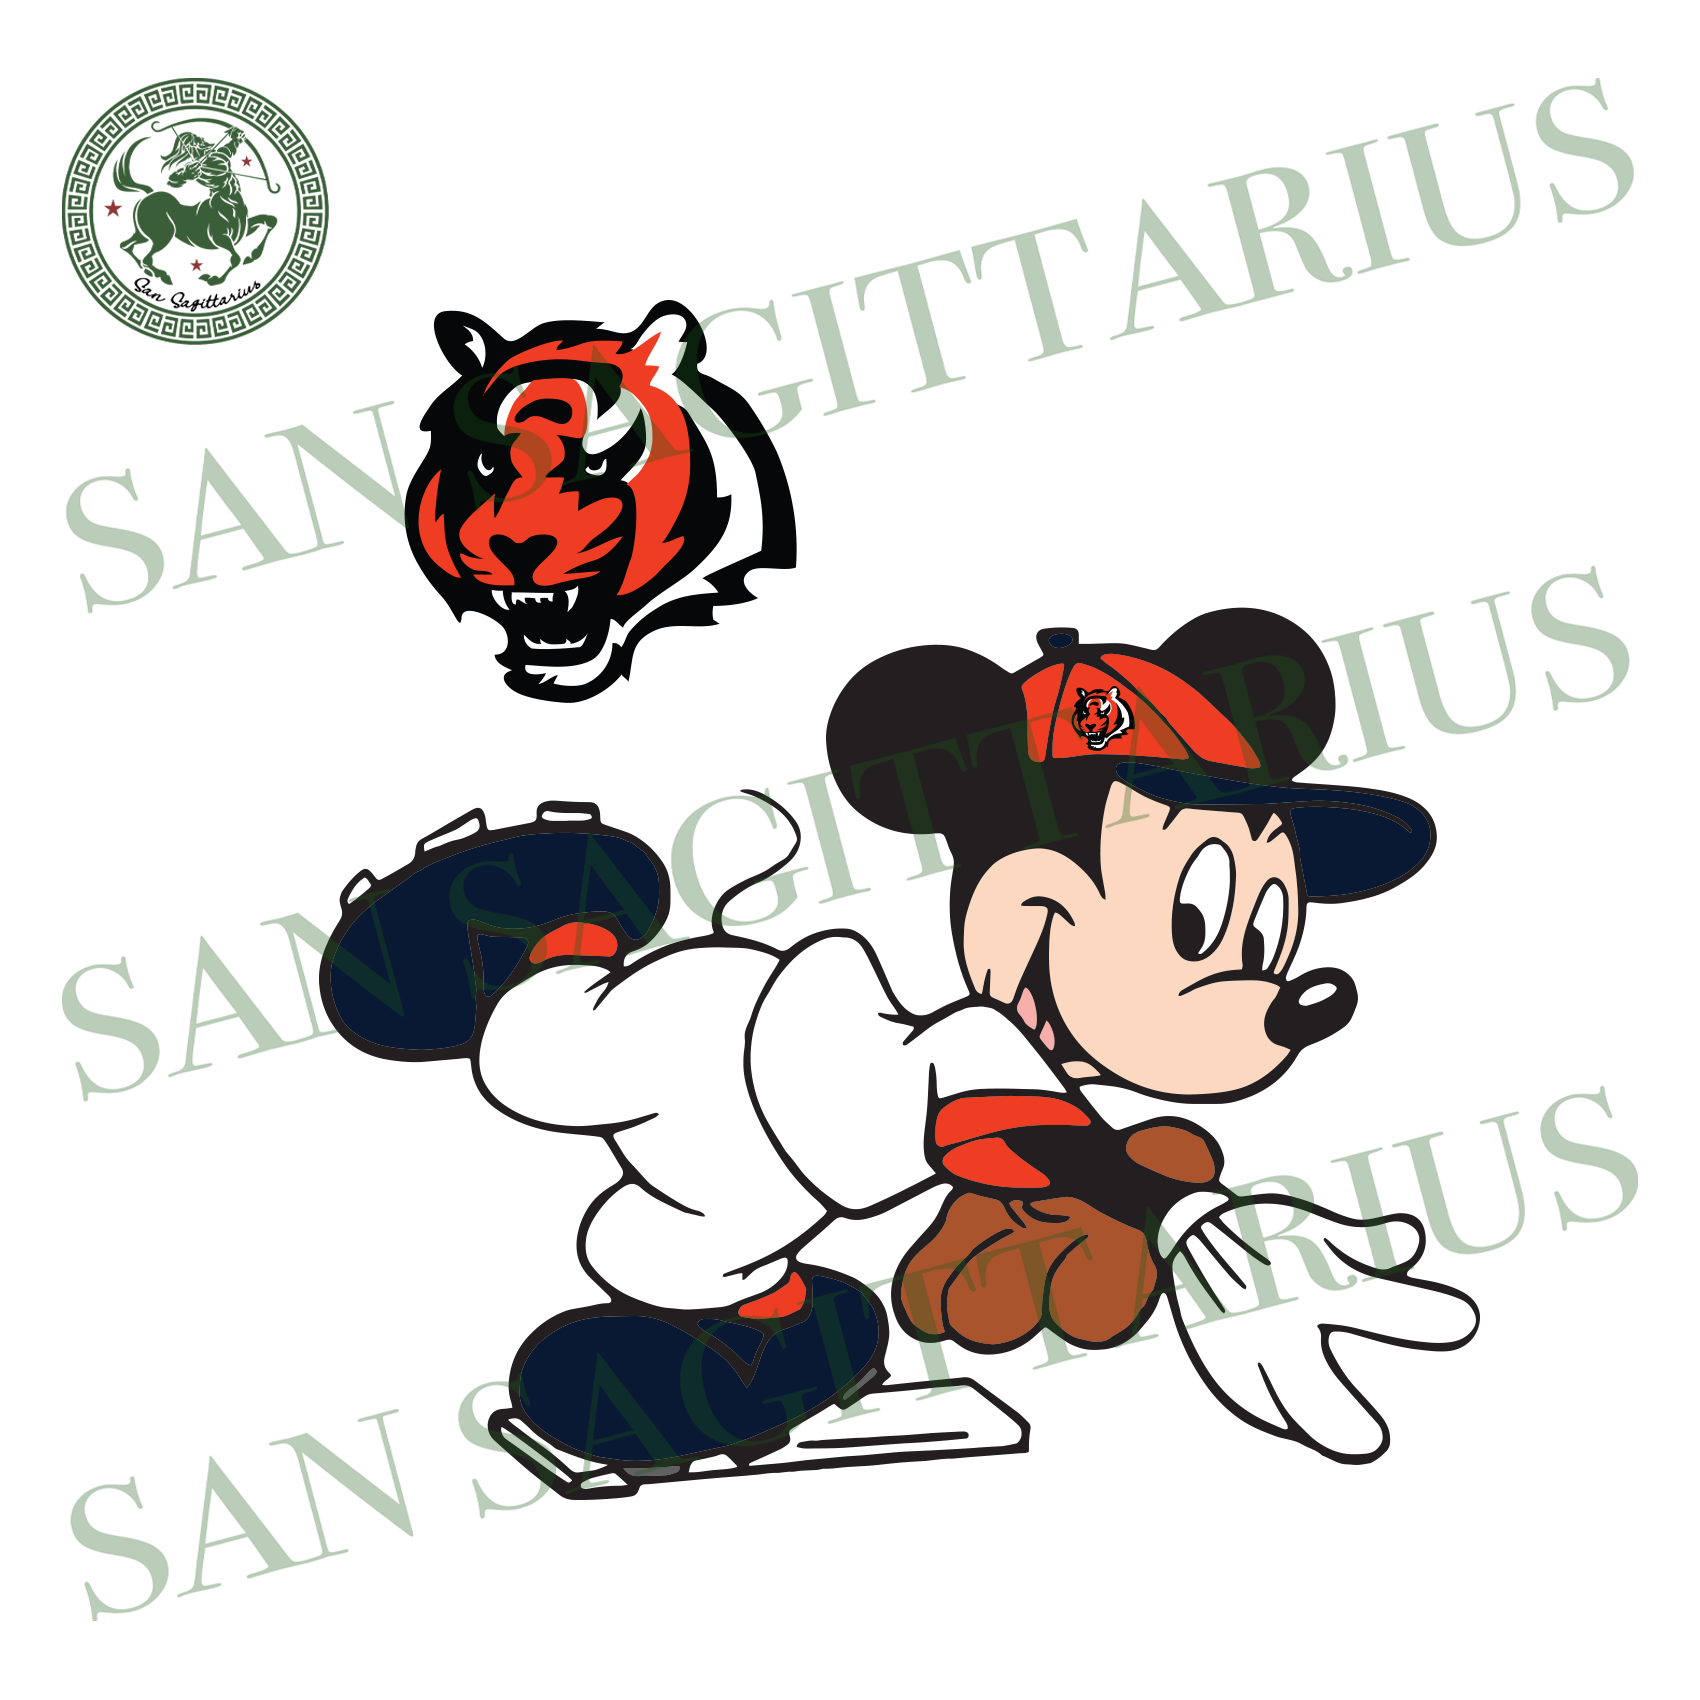 Bassett High School Logo And Mickey, Sport Svg, NFL Football Svg, NFL Svg, NFL Sport, Bassett High School Svg, Bassett High School, Bassett High School NFL Lover, Bassett NFL Svg, Football Sv